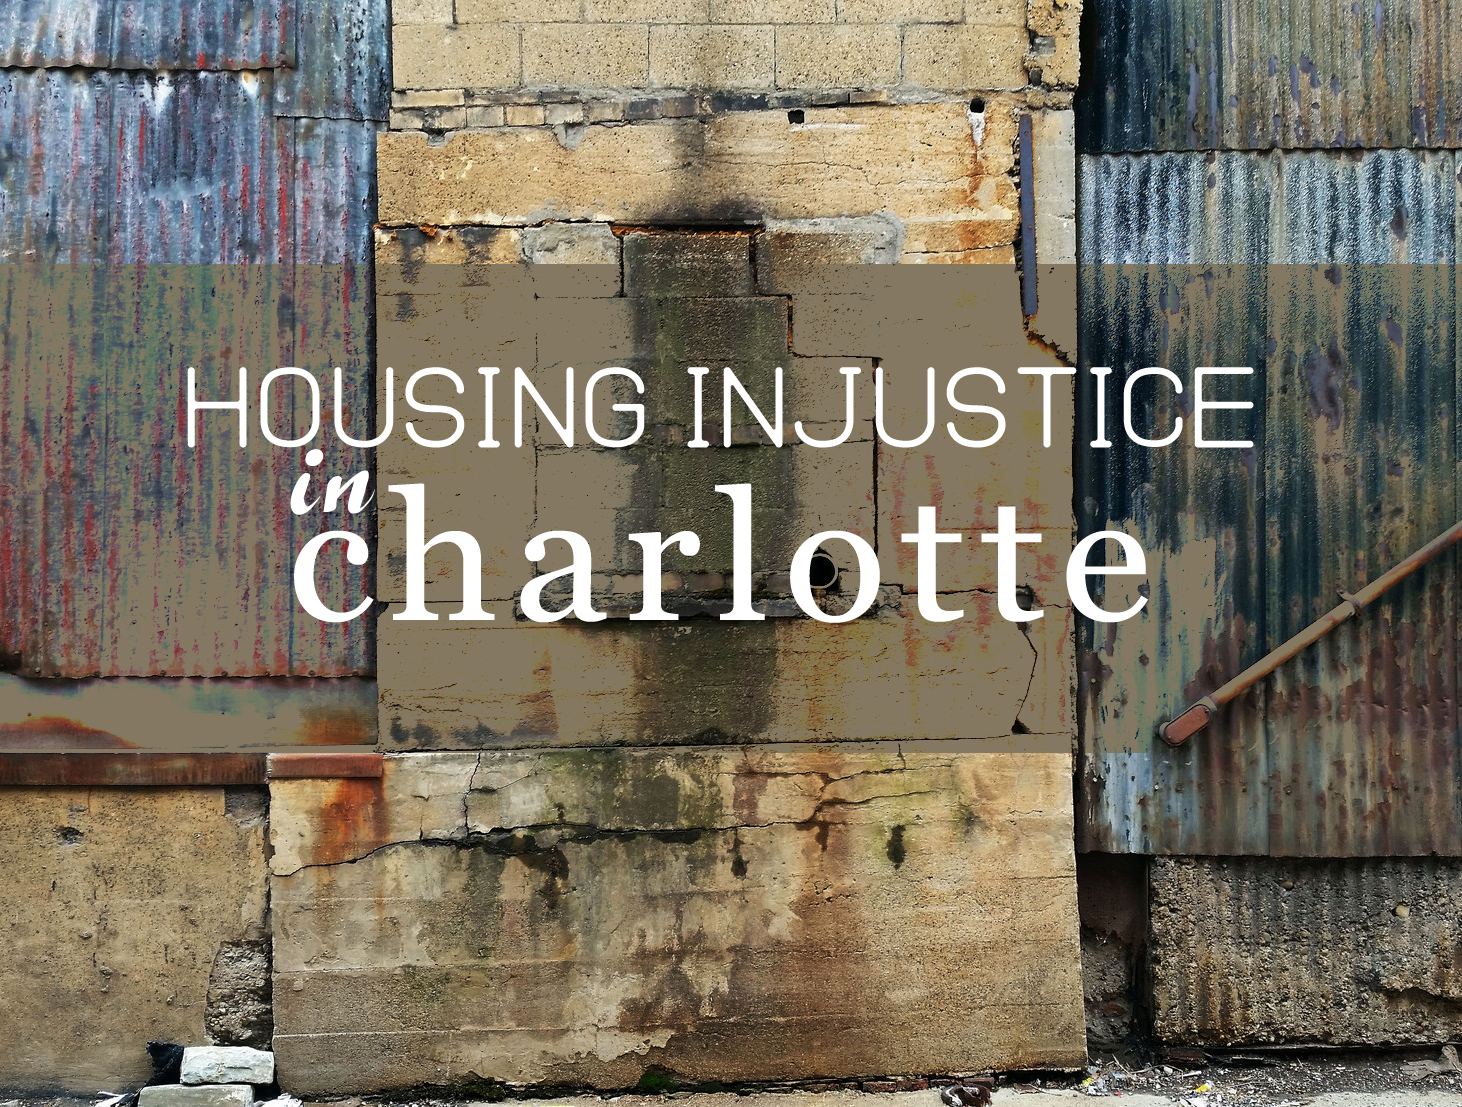 Housing Injustice in Charlotte, NC